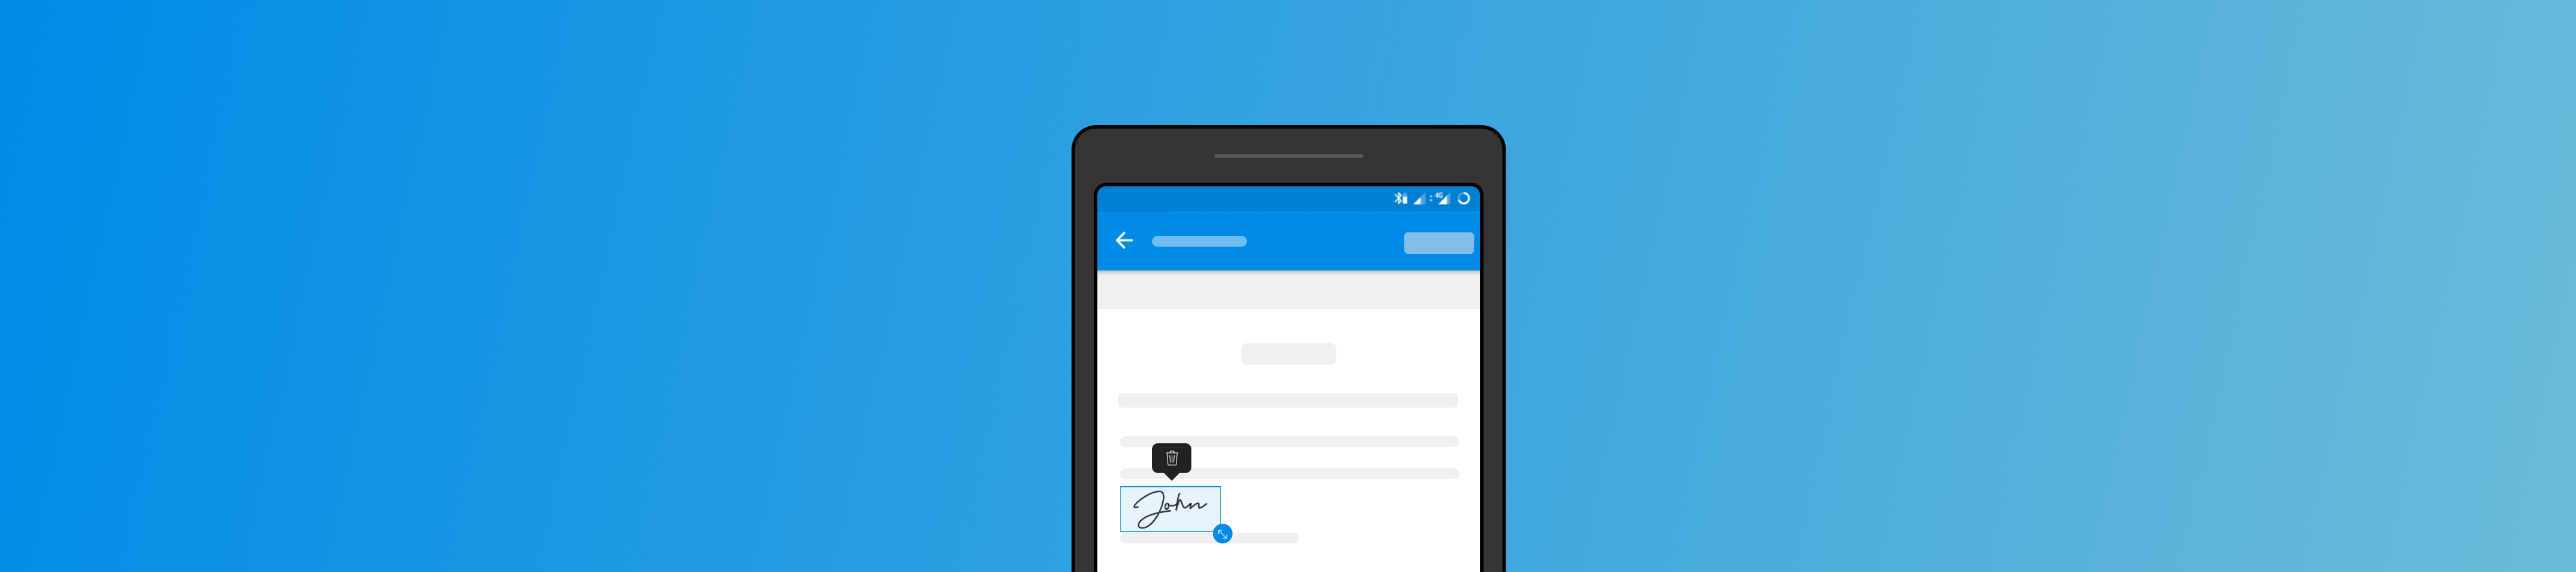 How to create an Electronic Signature on your Android device